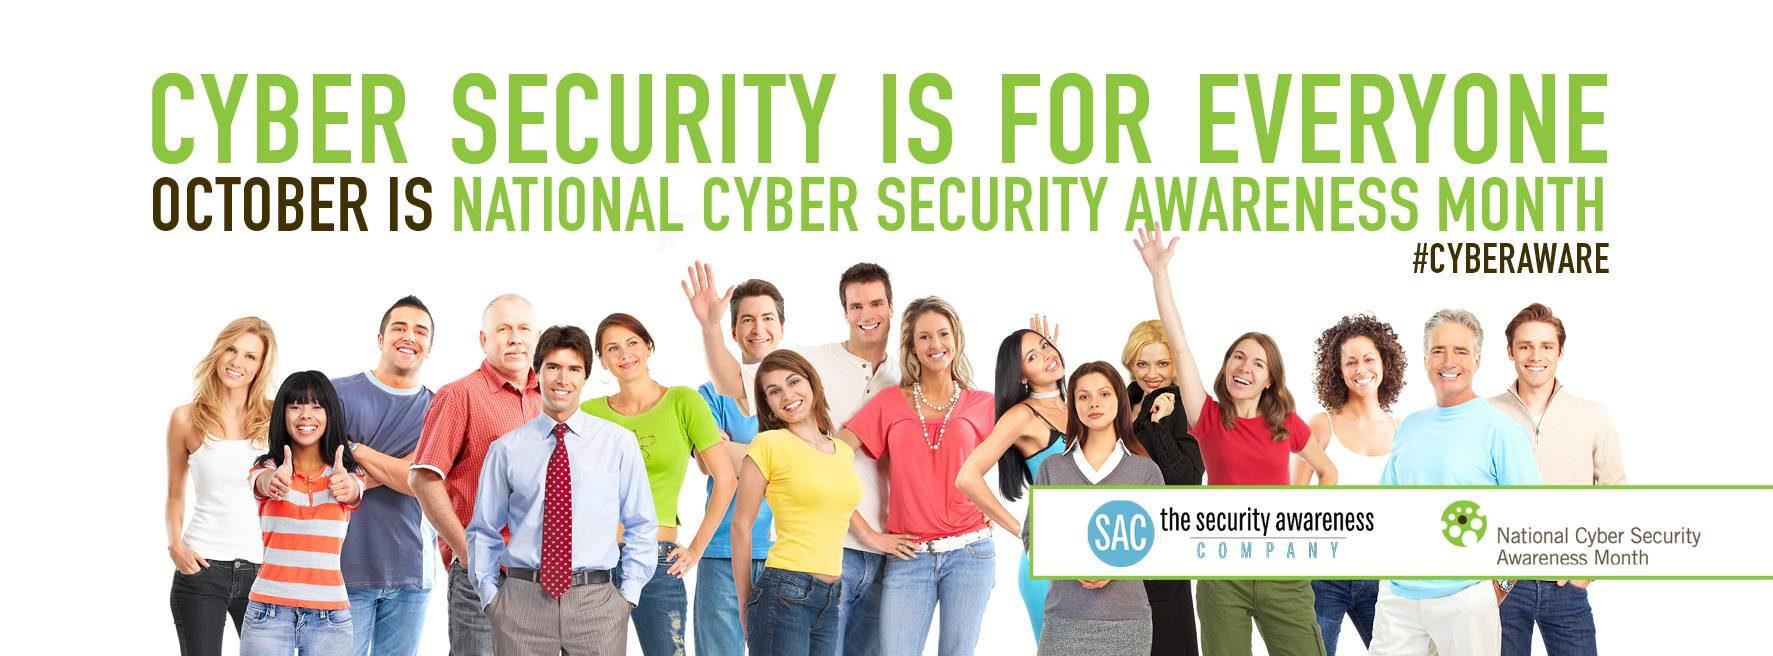 Hi! We're experts at creating end-user training that works bc #SecurityAwareness is our passion. Glad to be in another #CyberAware #ChatSTC! https://t.co/TzAV4Xdn6B